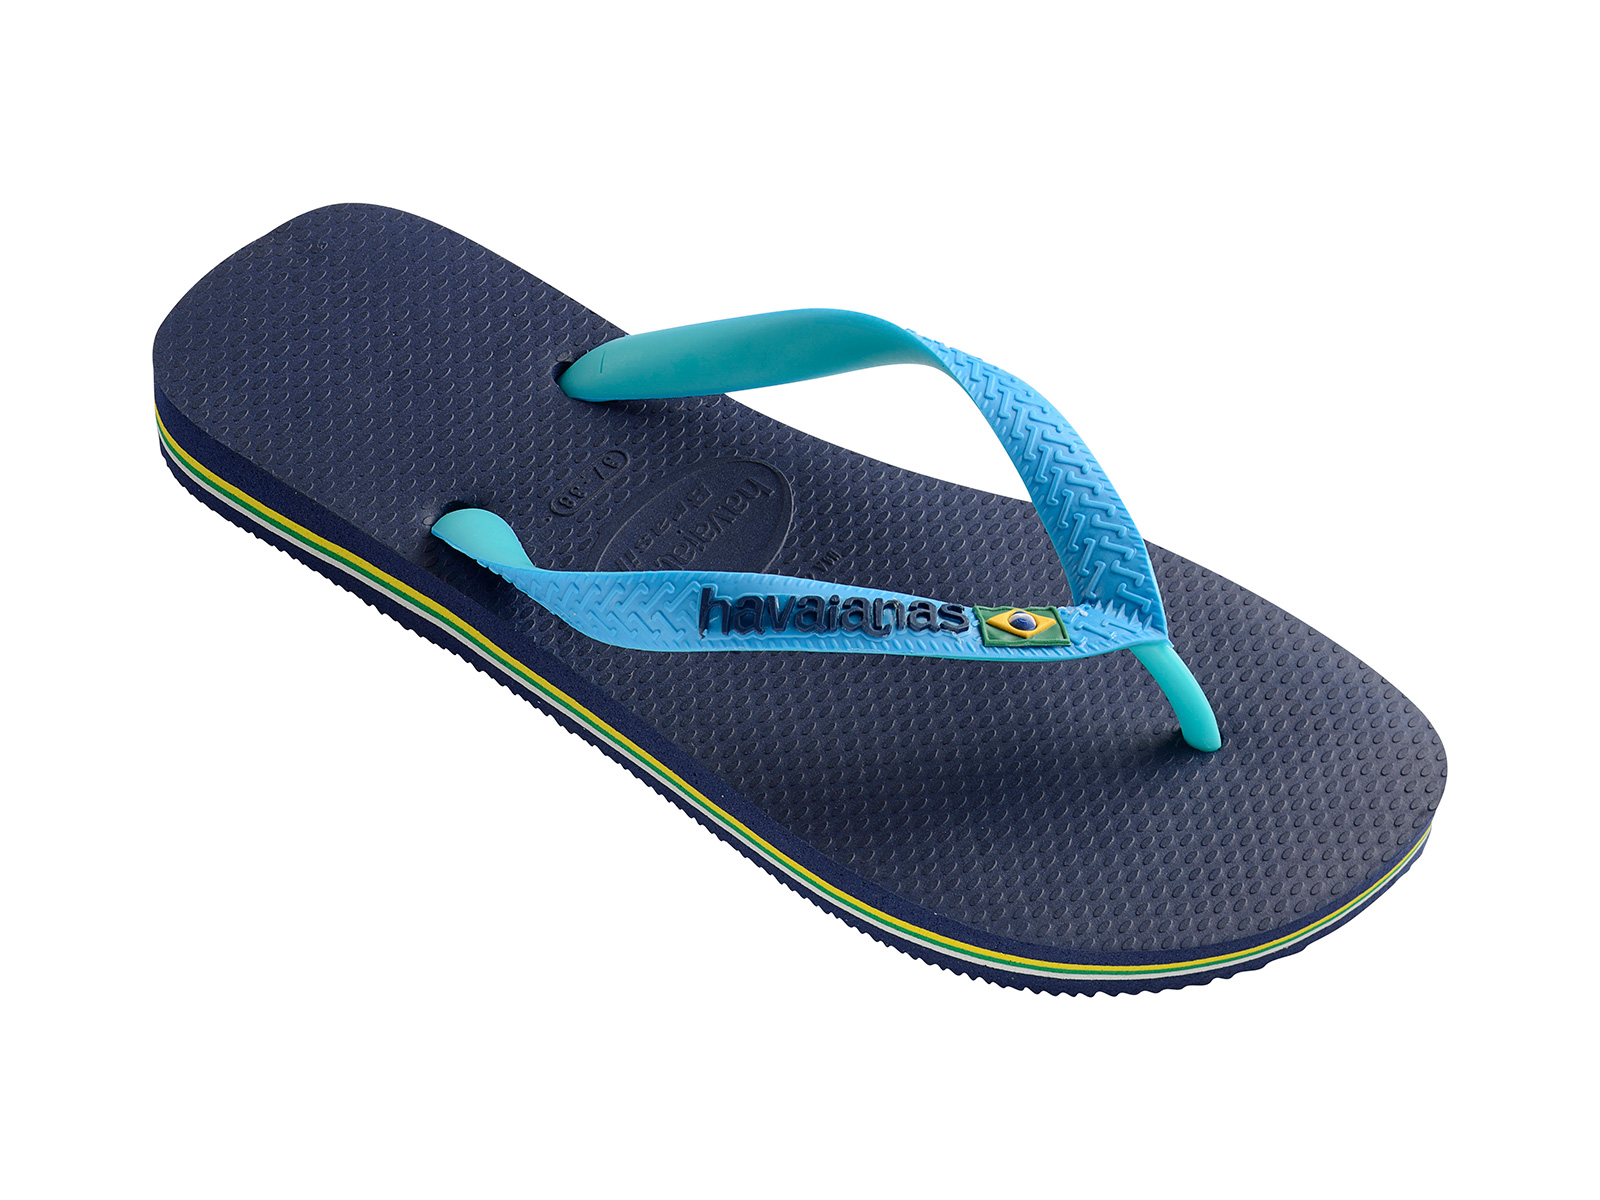 eeea5dfcb4516 Two-toned Flip Flops Featuring A Navy Blue Footbed And Turquoise Straps - Brasil  Mix Navy Blue turquoise - Havaianas